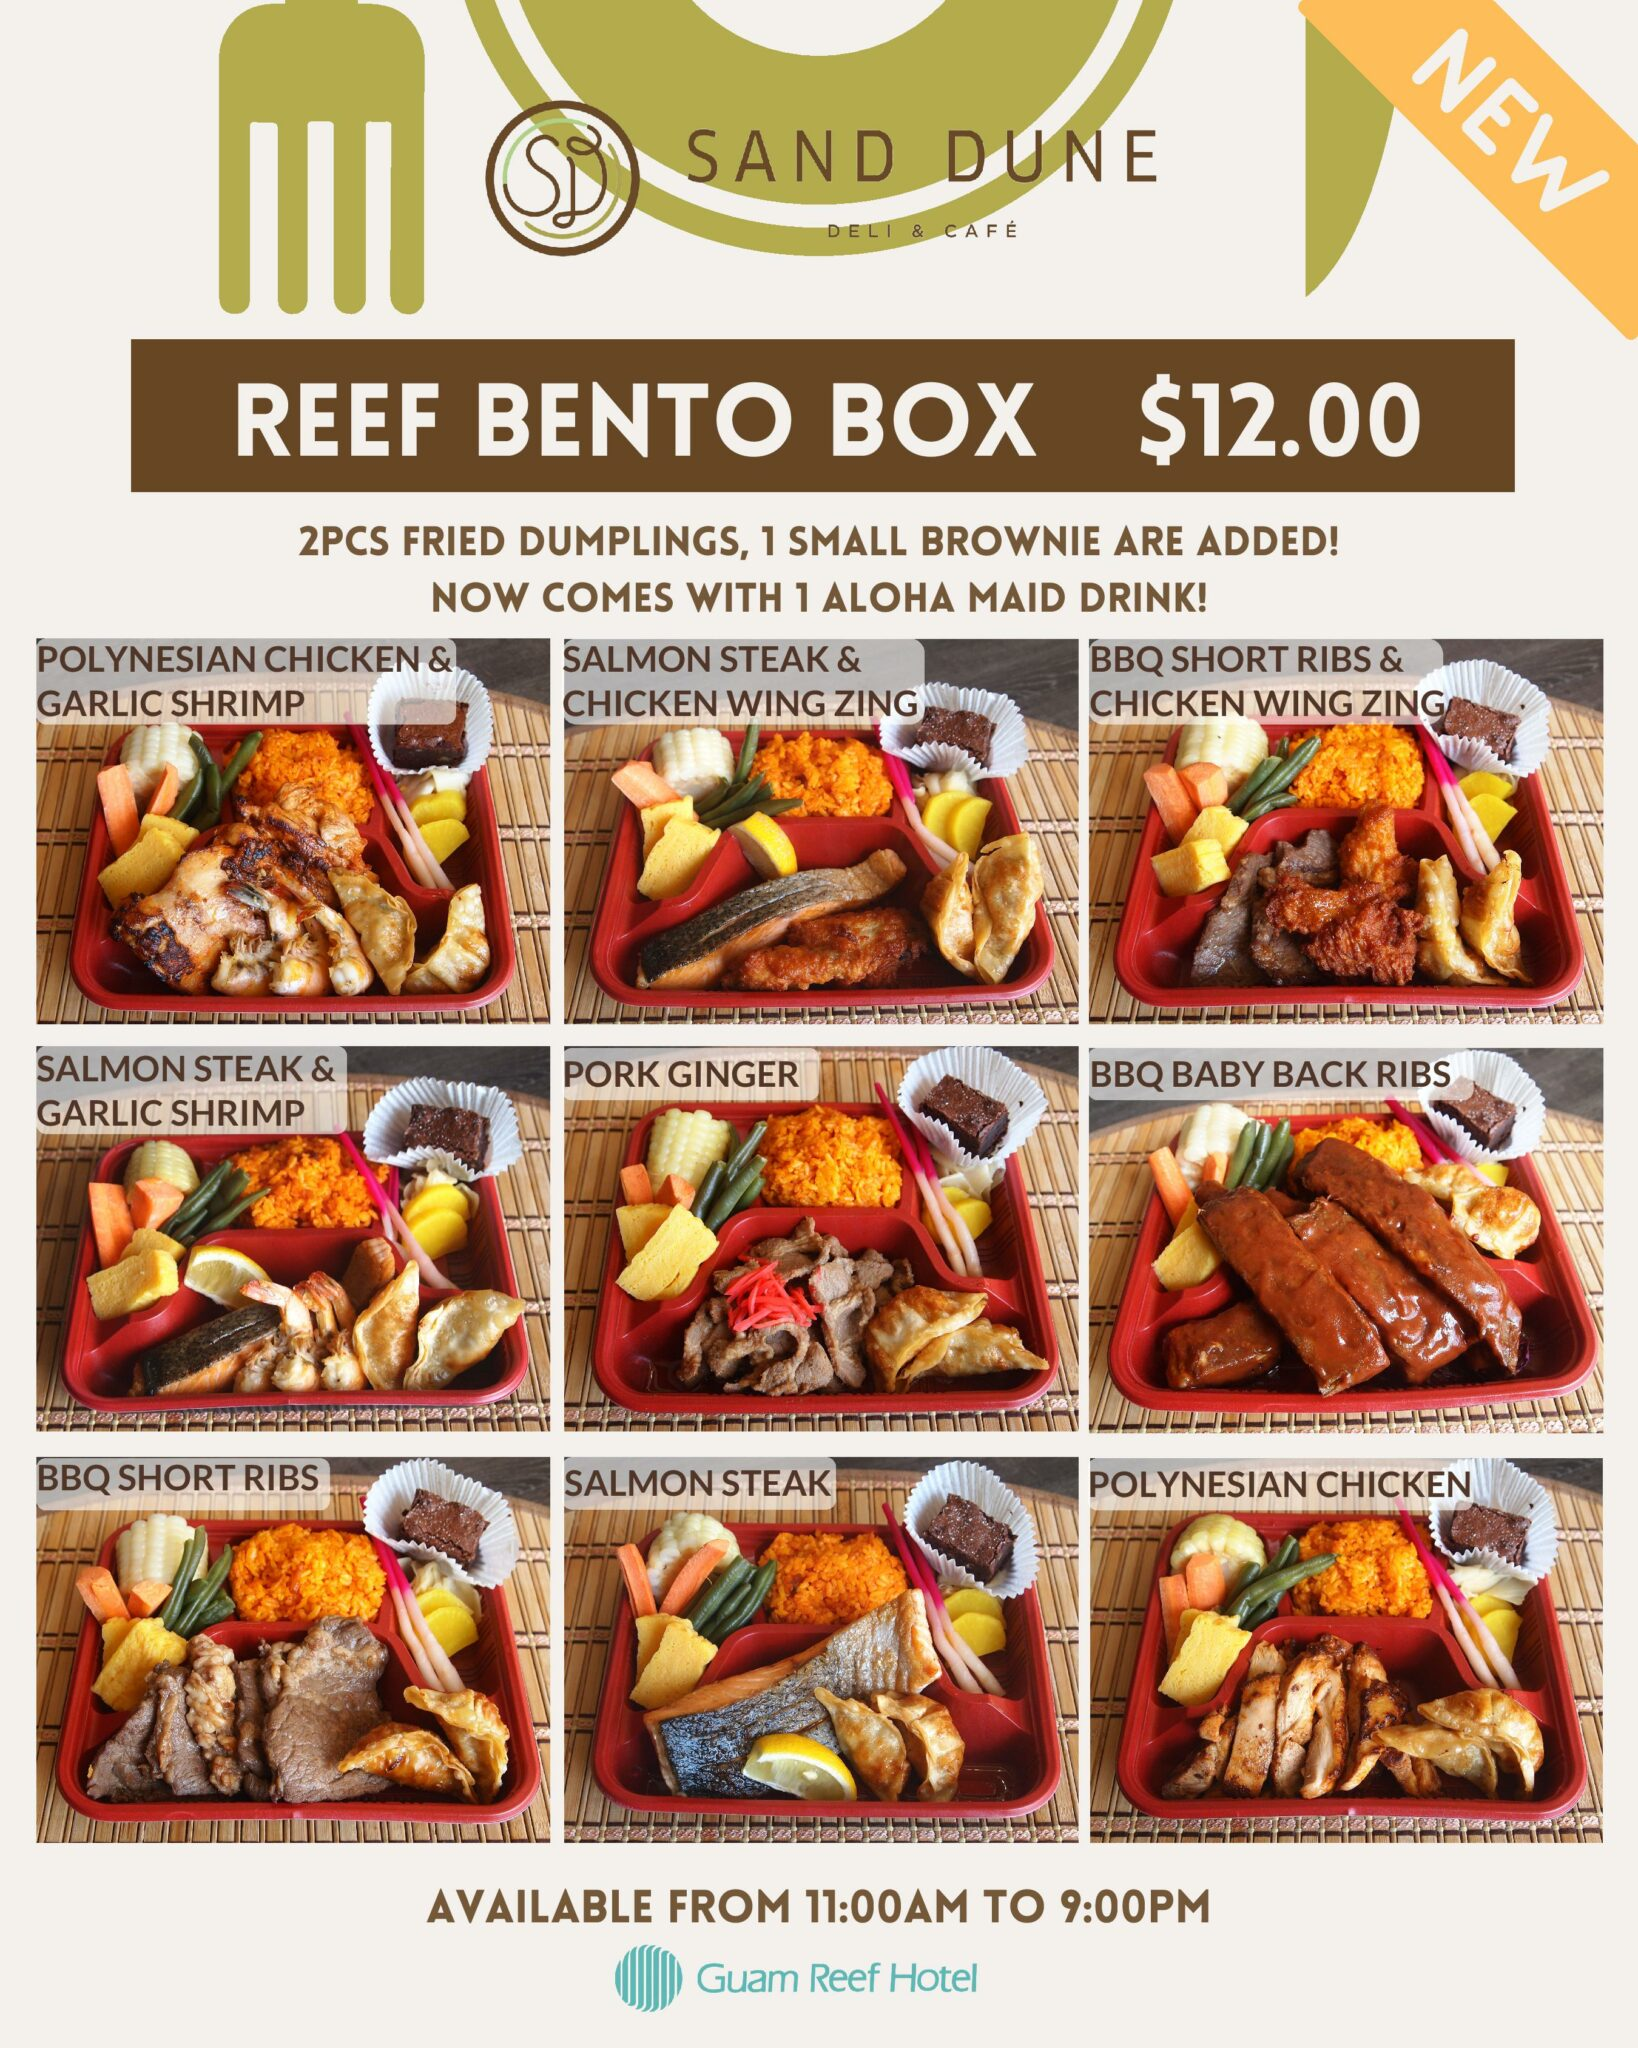 Reef To Go Bento Box